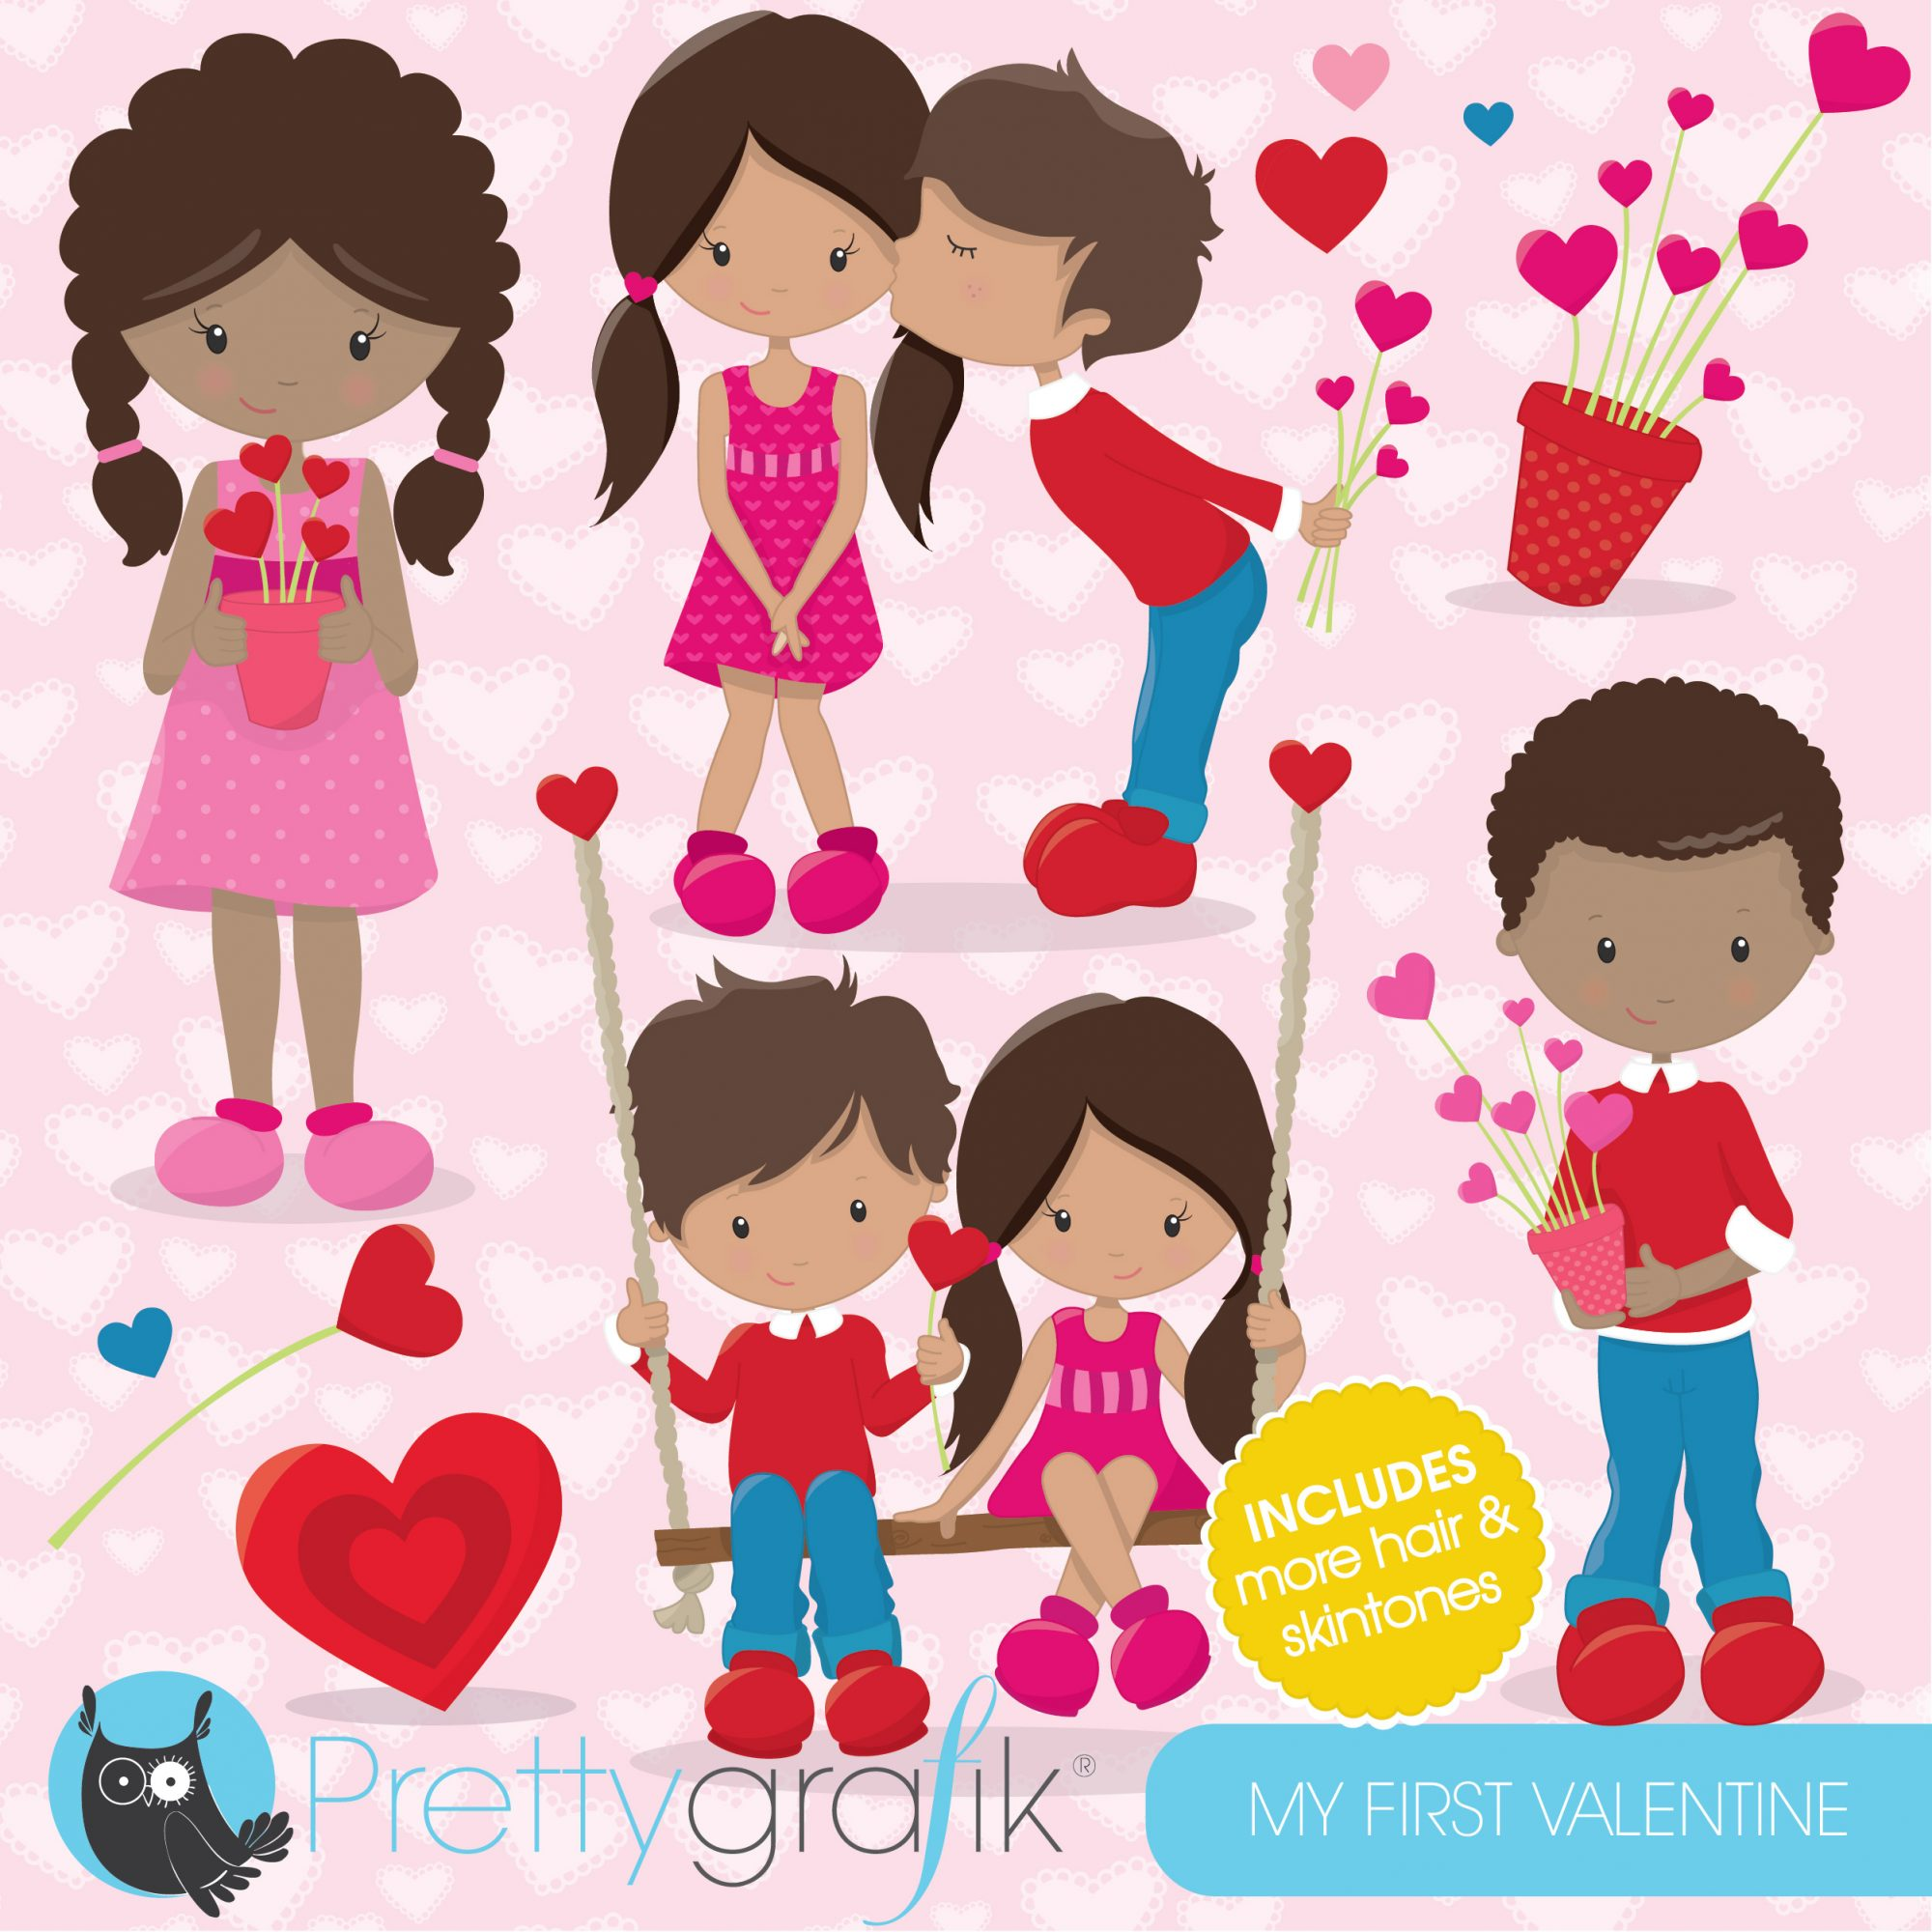 Valentine kids clipart banner black and white library Valentine kids clipart banner black and white library